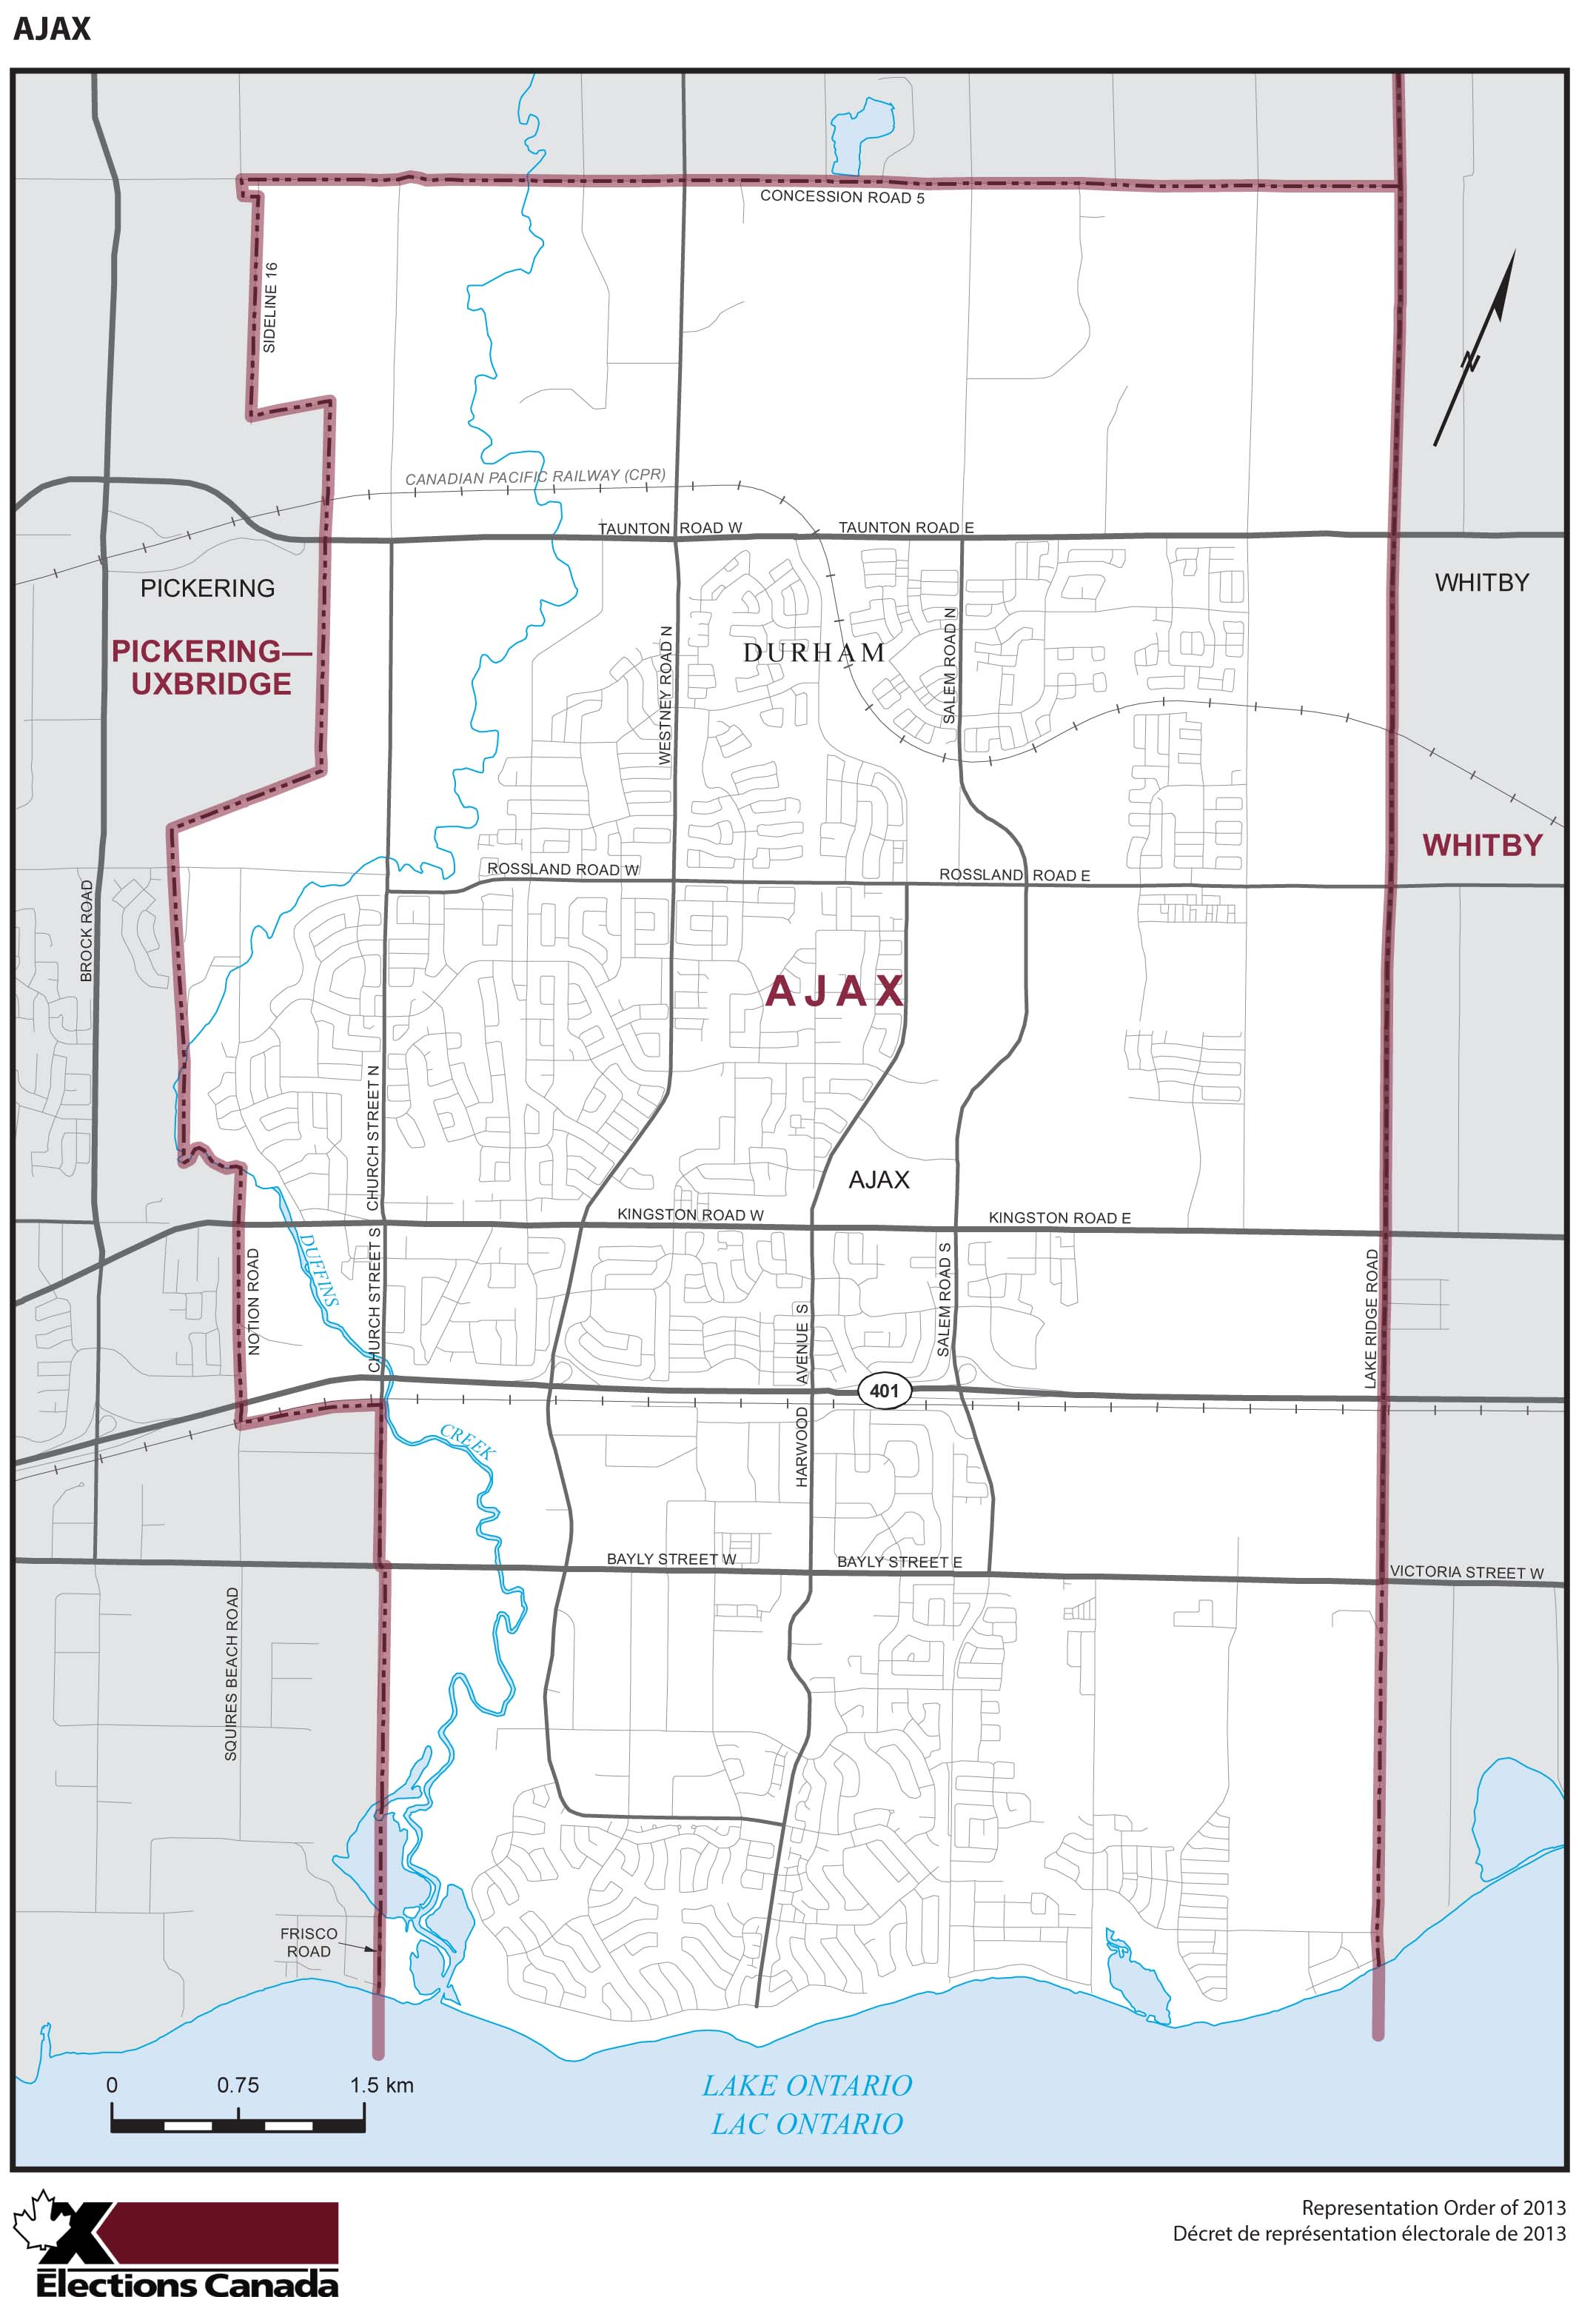 Map: Ajax, Federal electoral district, 2013 Representation Order (in white), Ontario